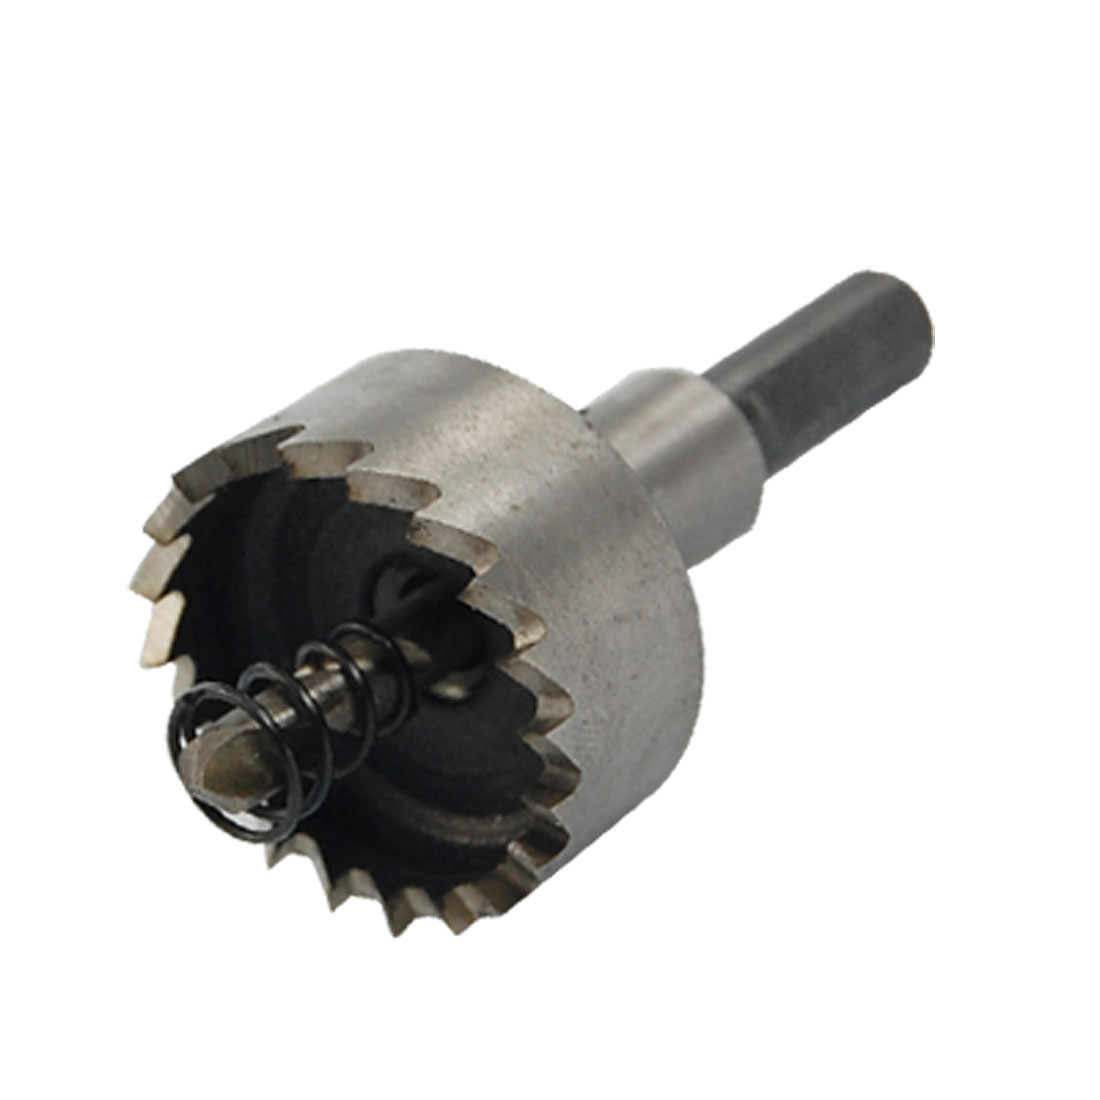 30mm Cutting Diameter High Speed Steel Hole Saw for Metal